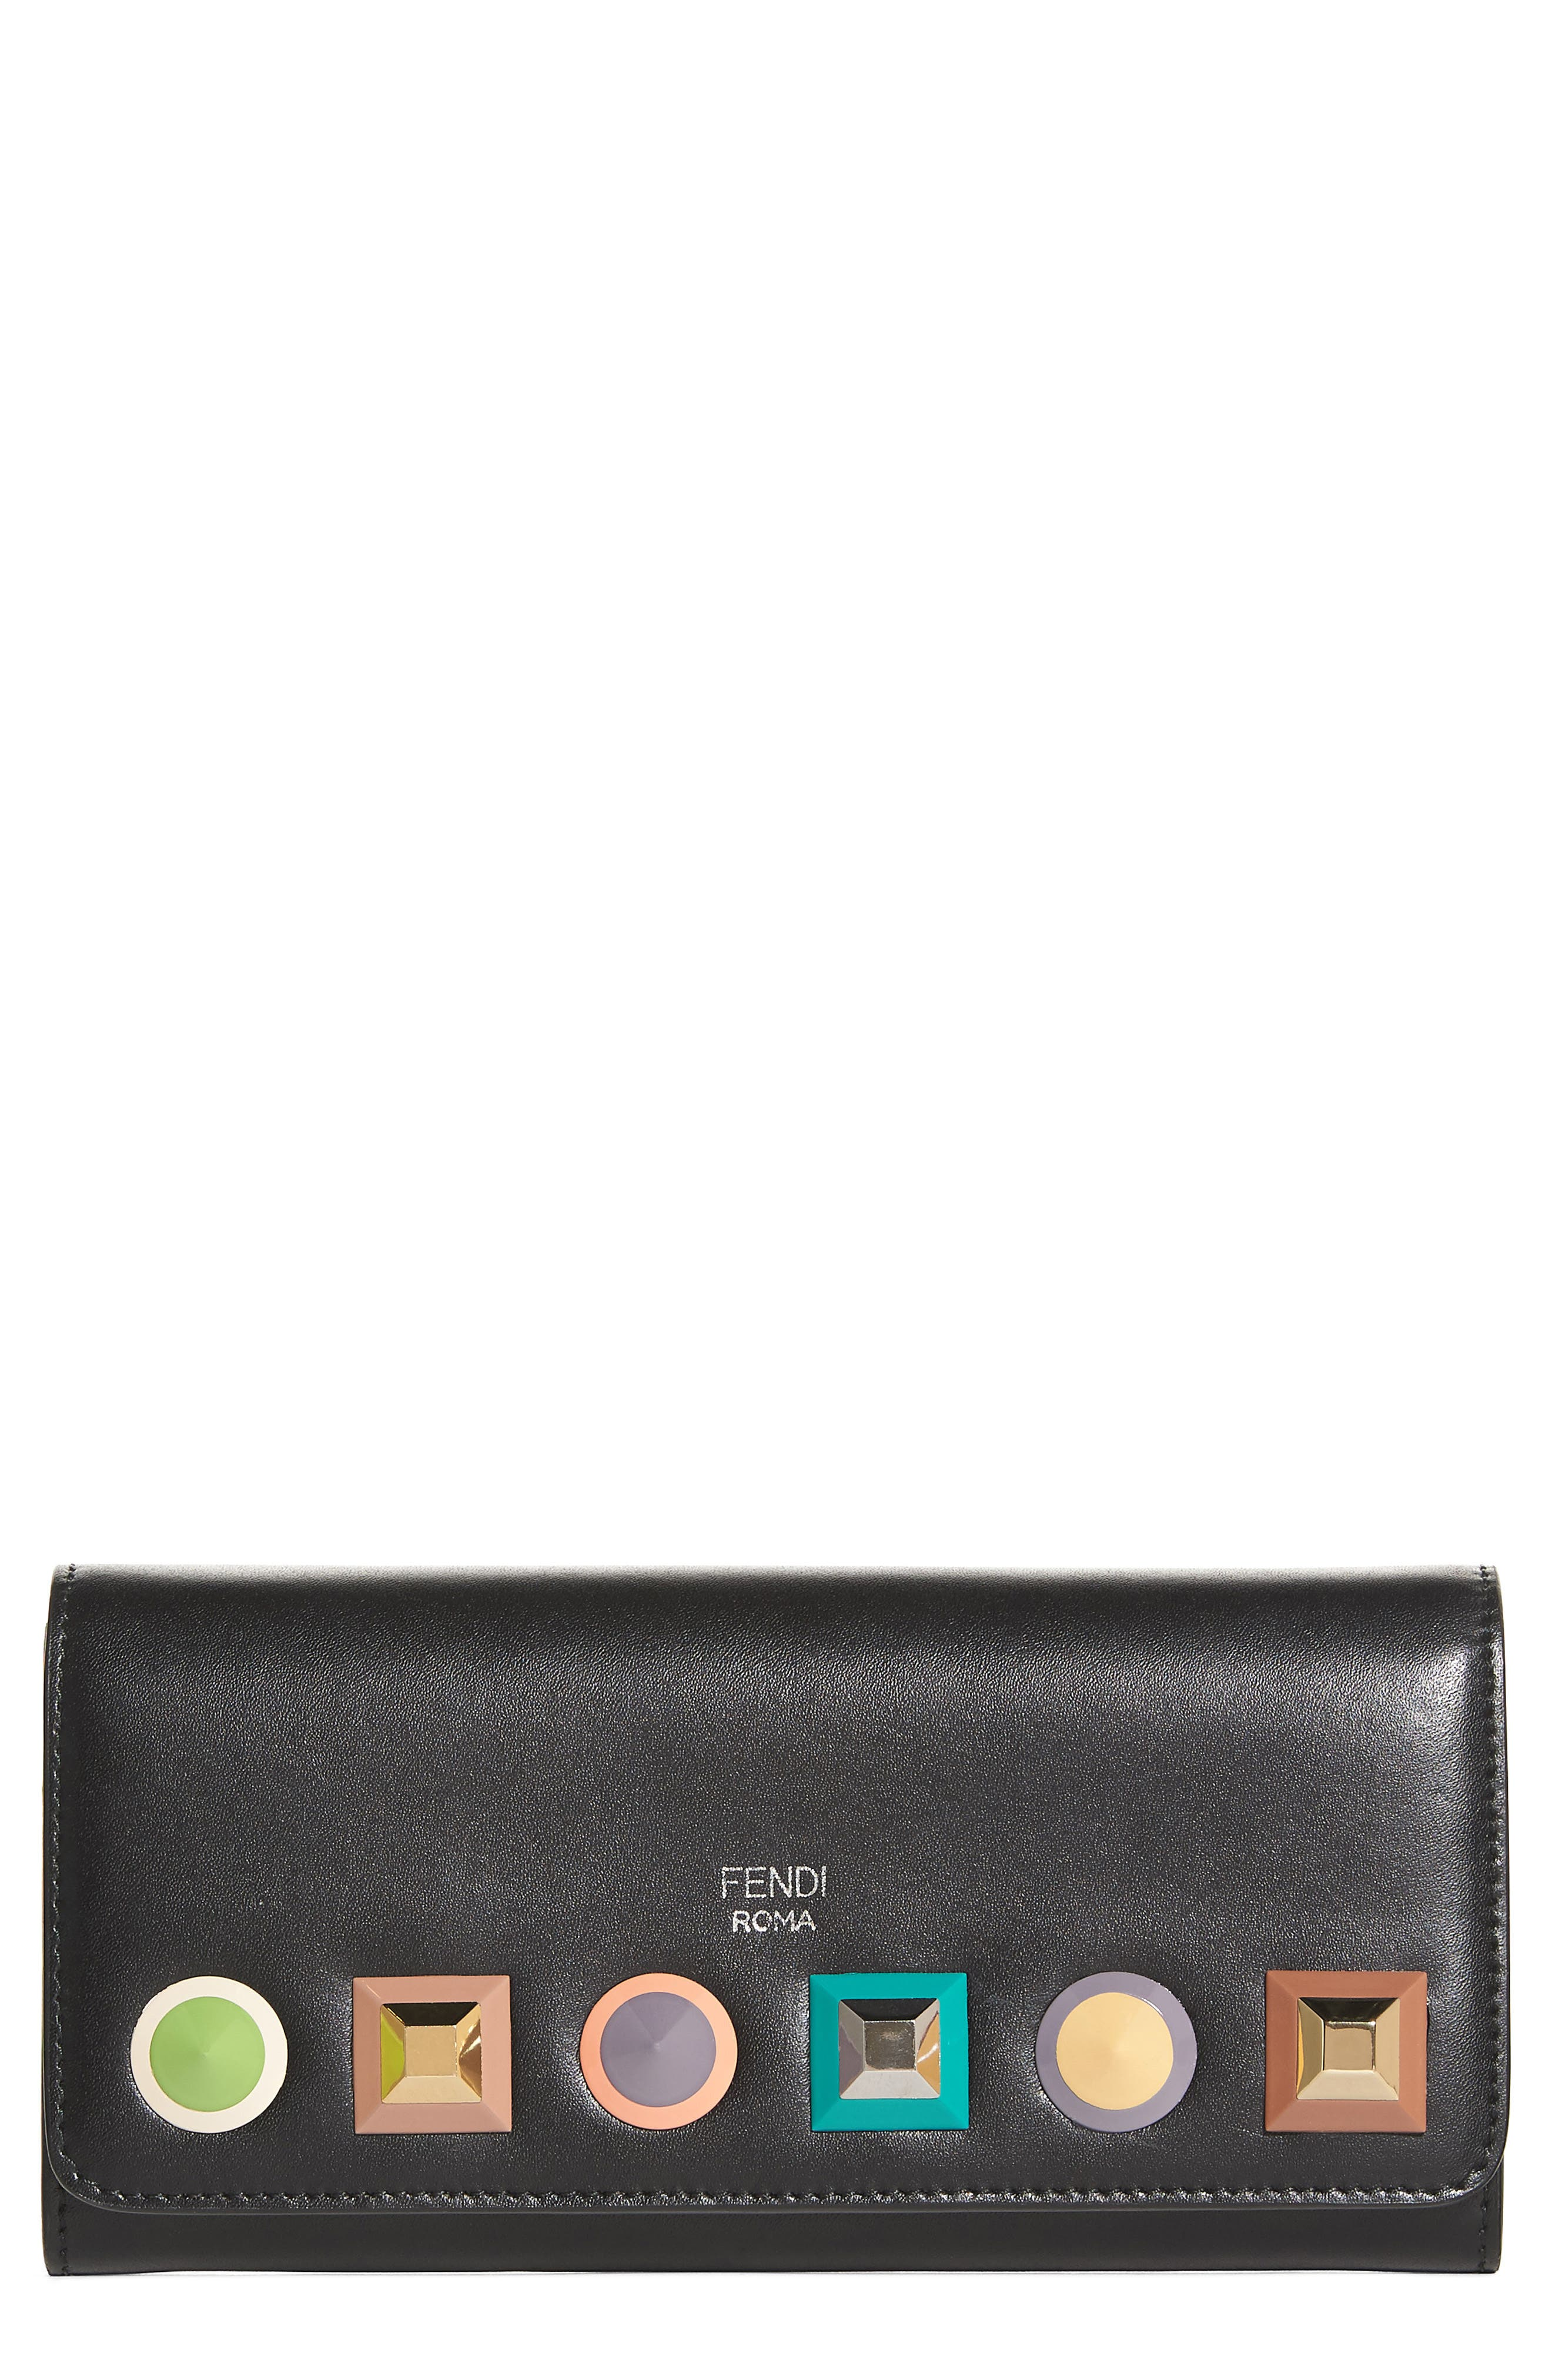 Fendi Rainbow Stud Calfskin Leather Wallet on a Chain